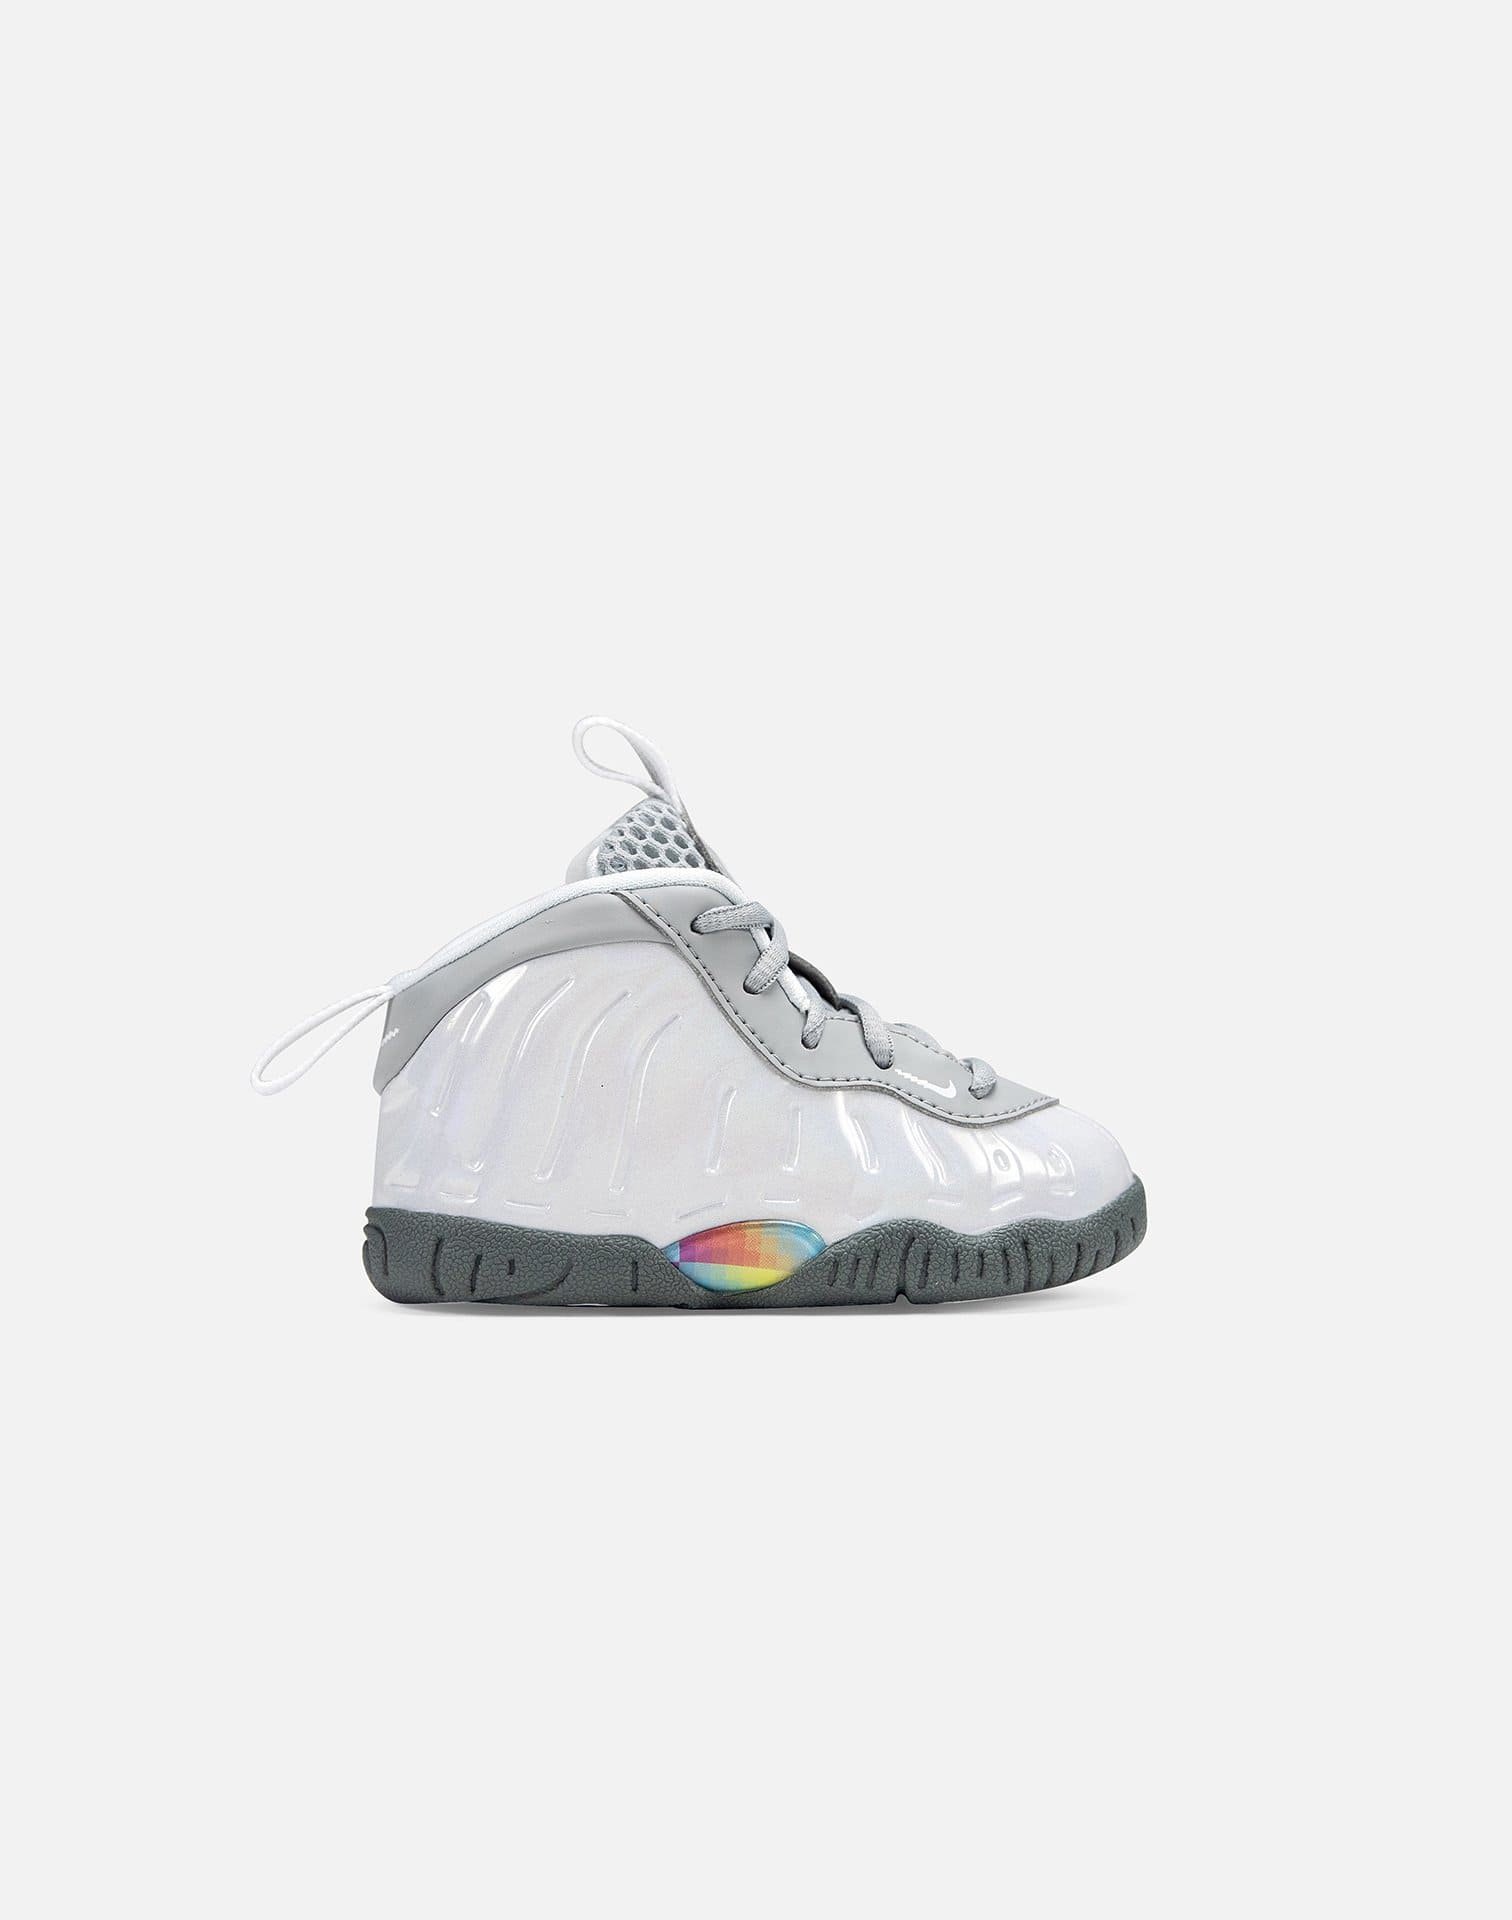 Nike LIL' POSITE ONE 'RAINBOW PIXEL' INFANT